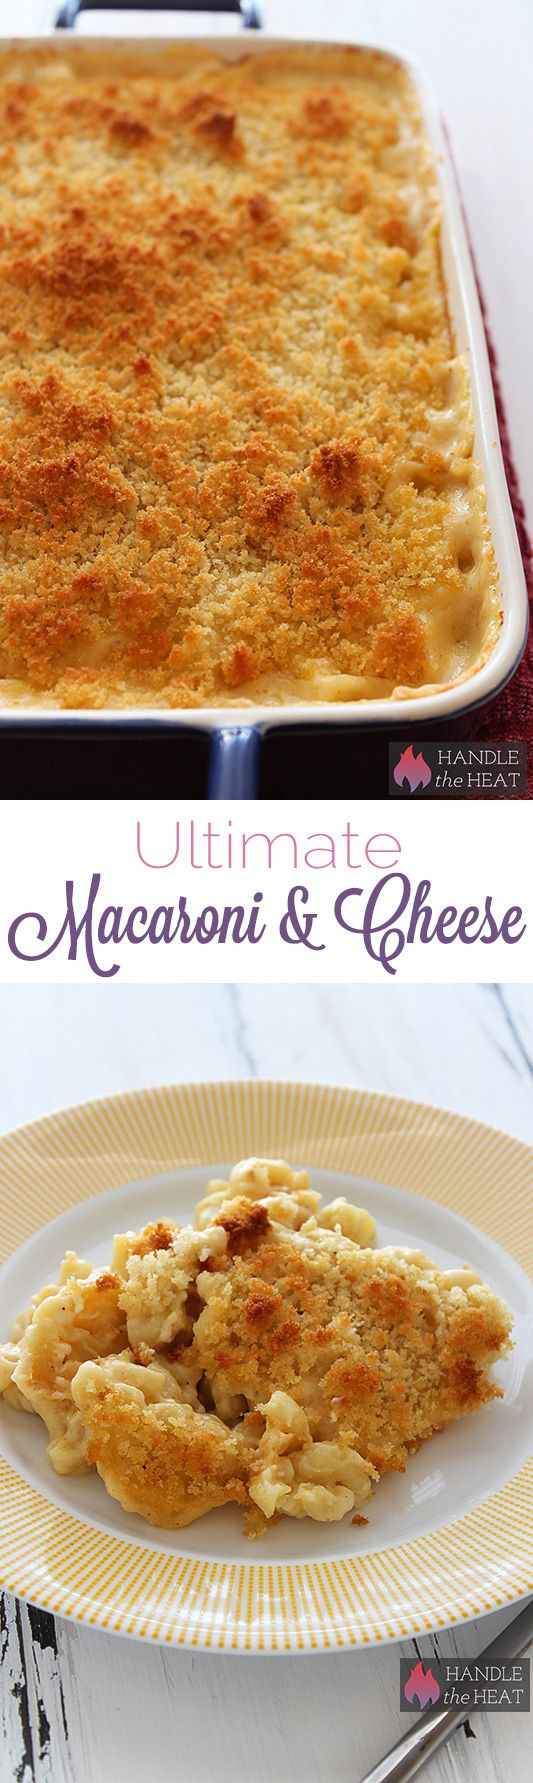 Ultimate Macaroni & Cheese - one of my FAVORITE comfort food recipes! Recipe from Handle The Heat